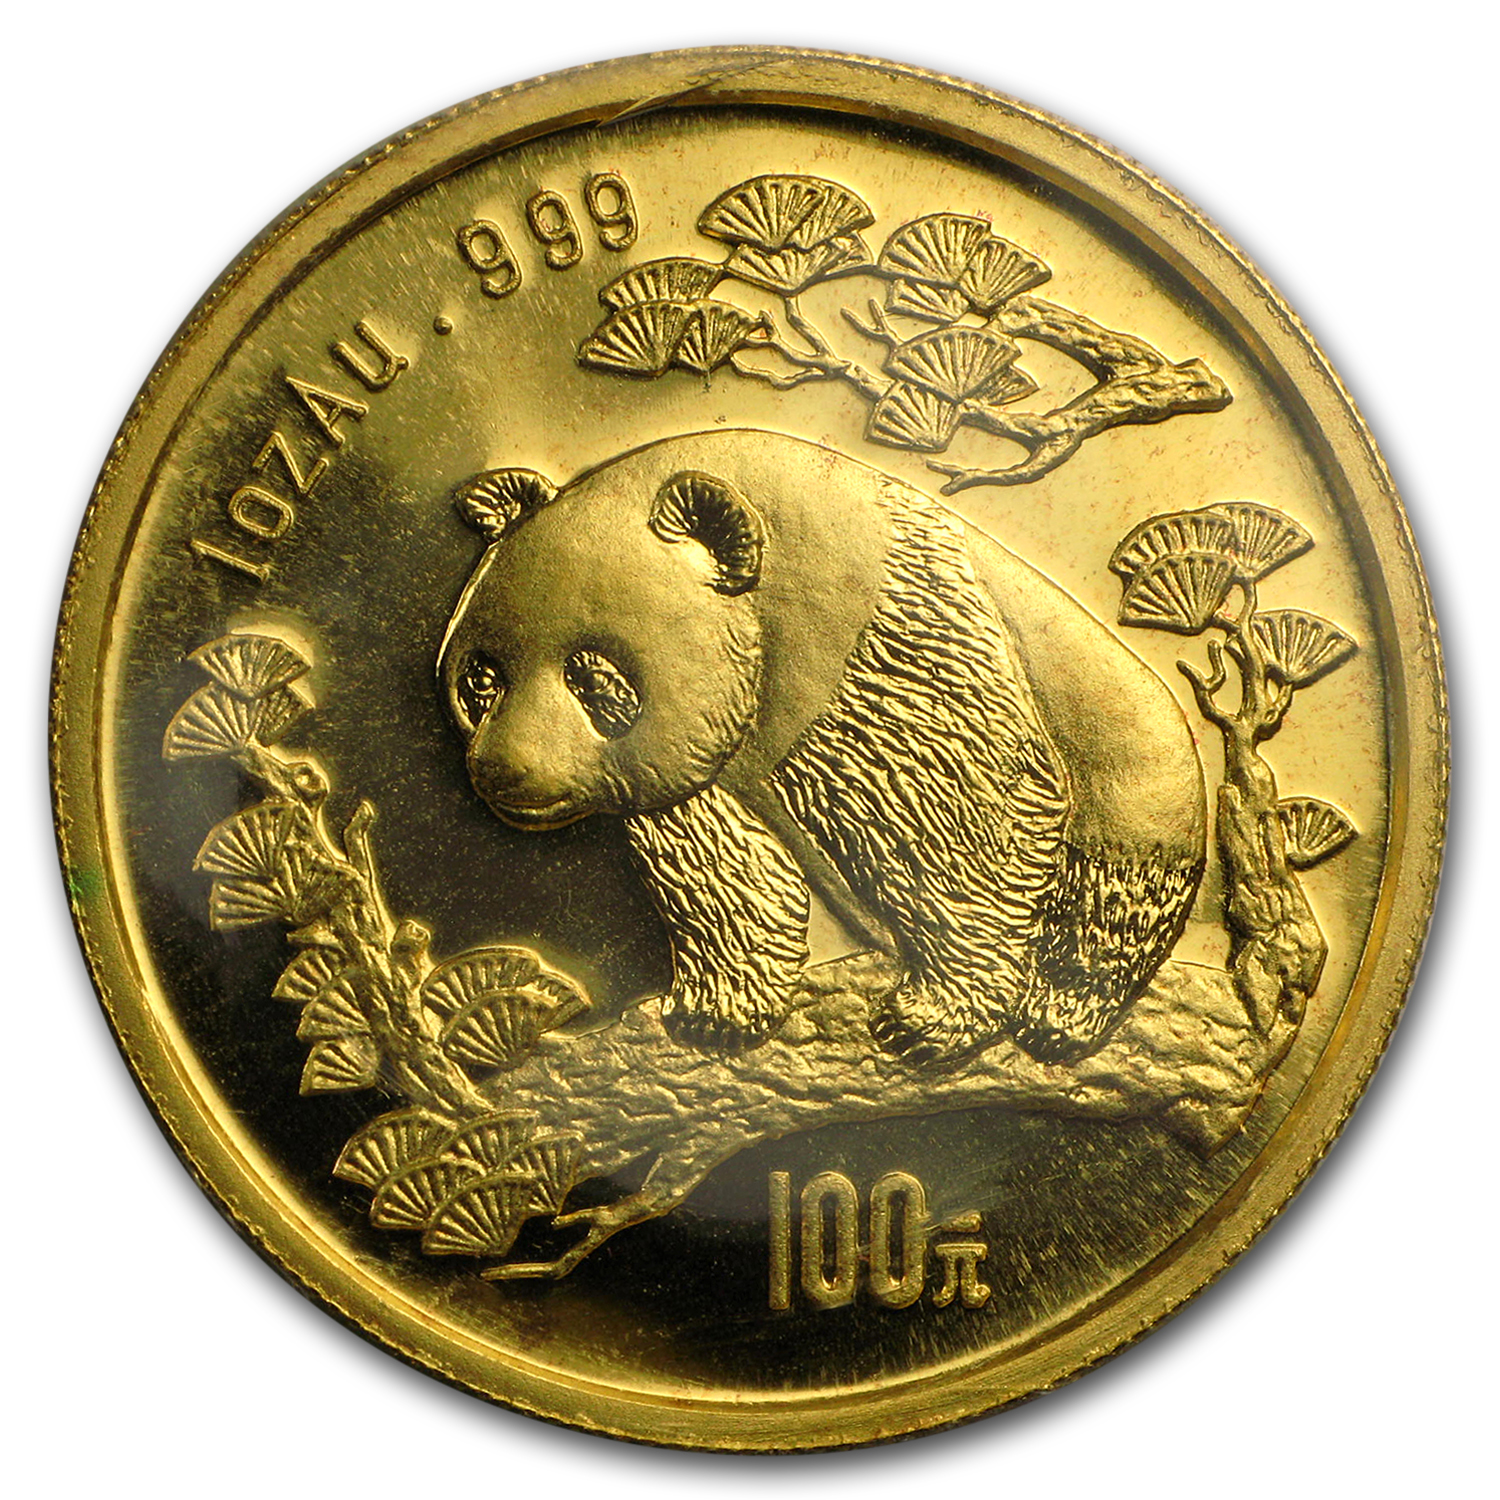 1997 China 1 oz Gold Panda Small Date BU (Sealed)